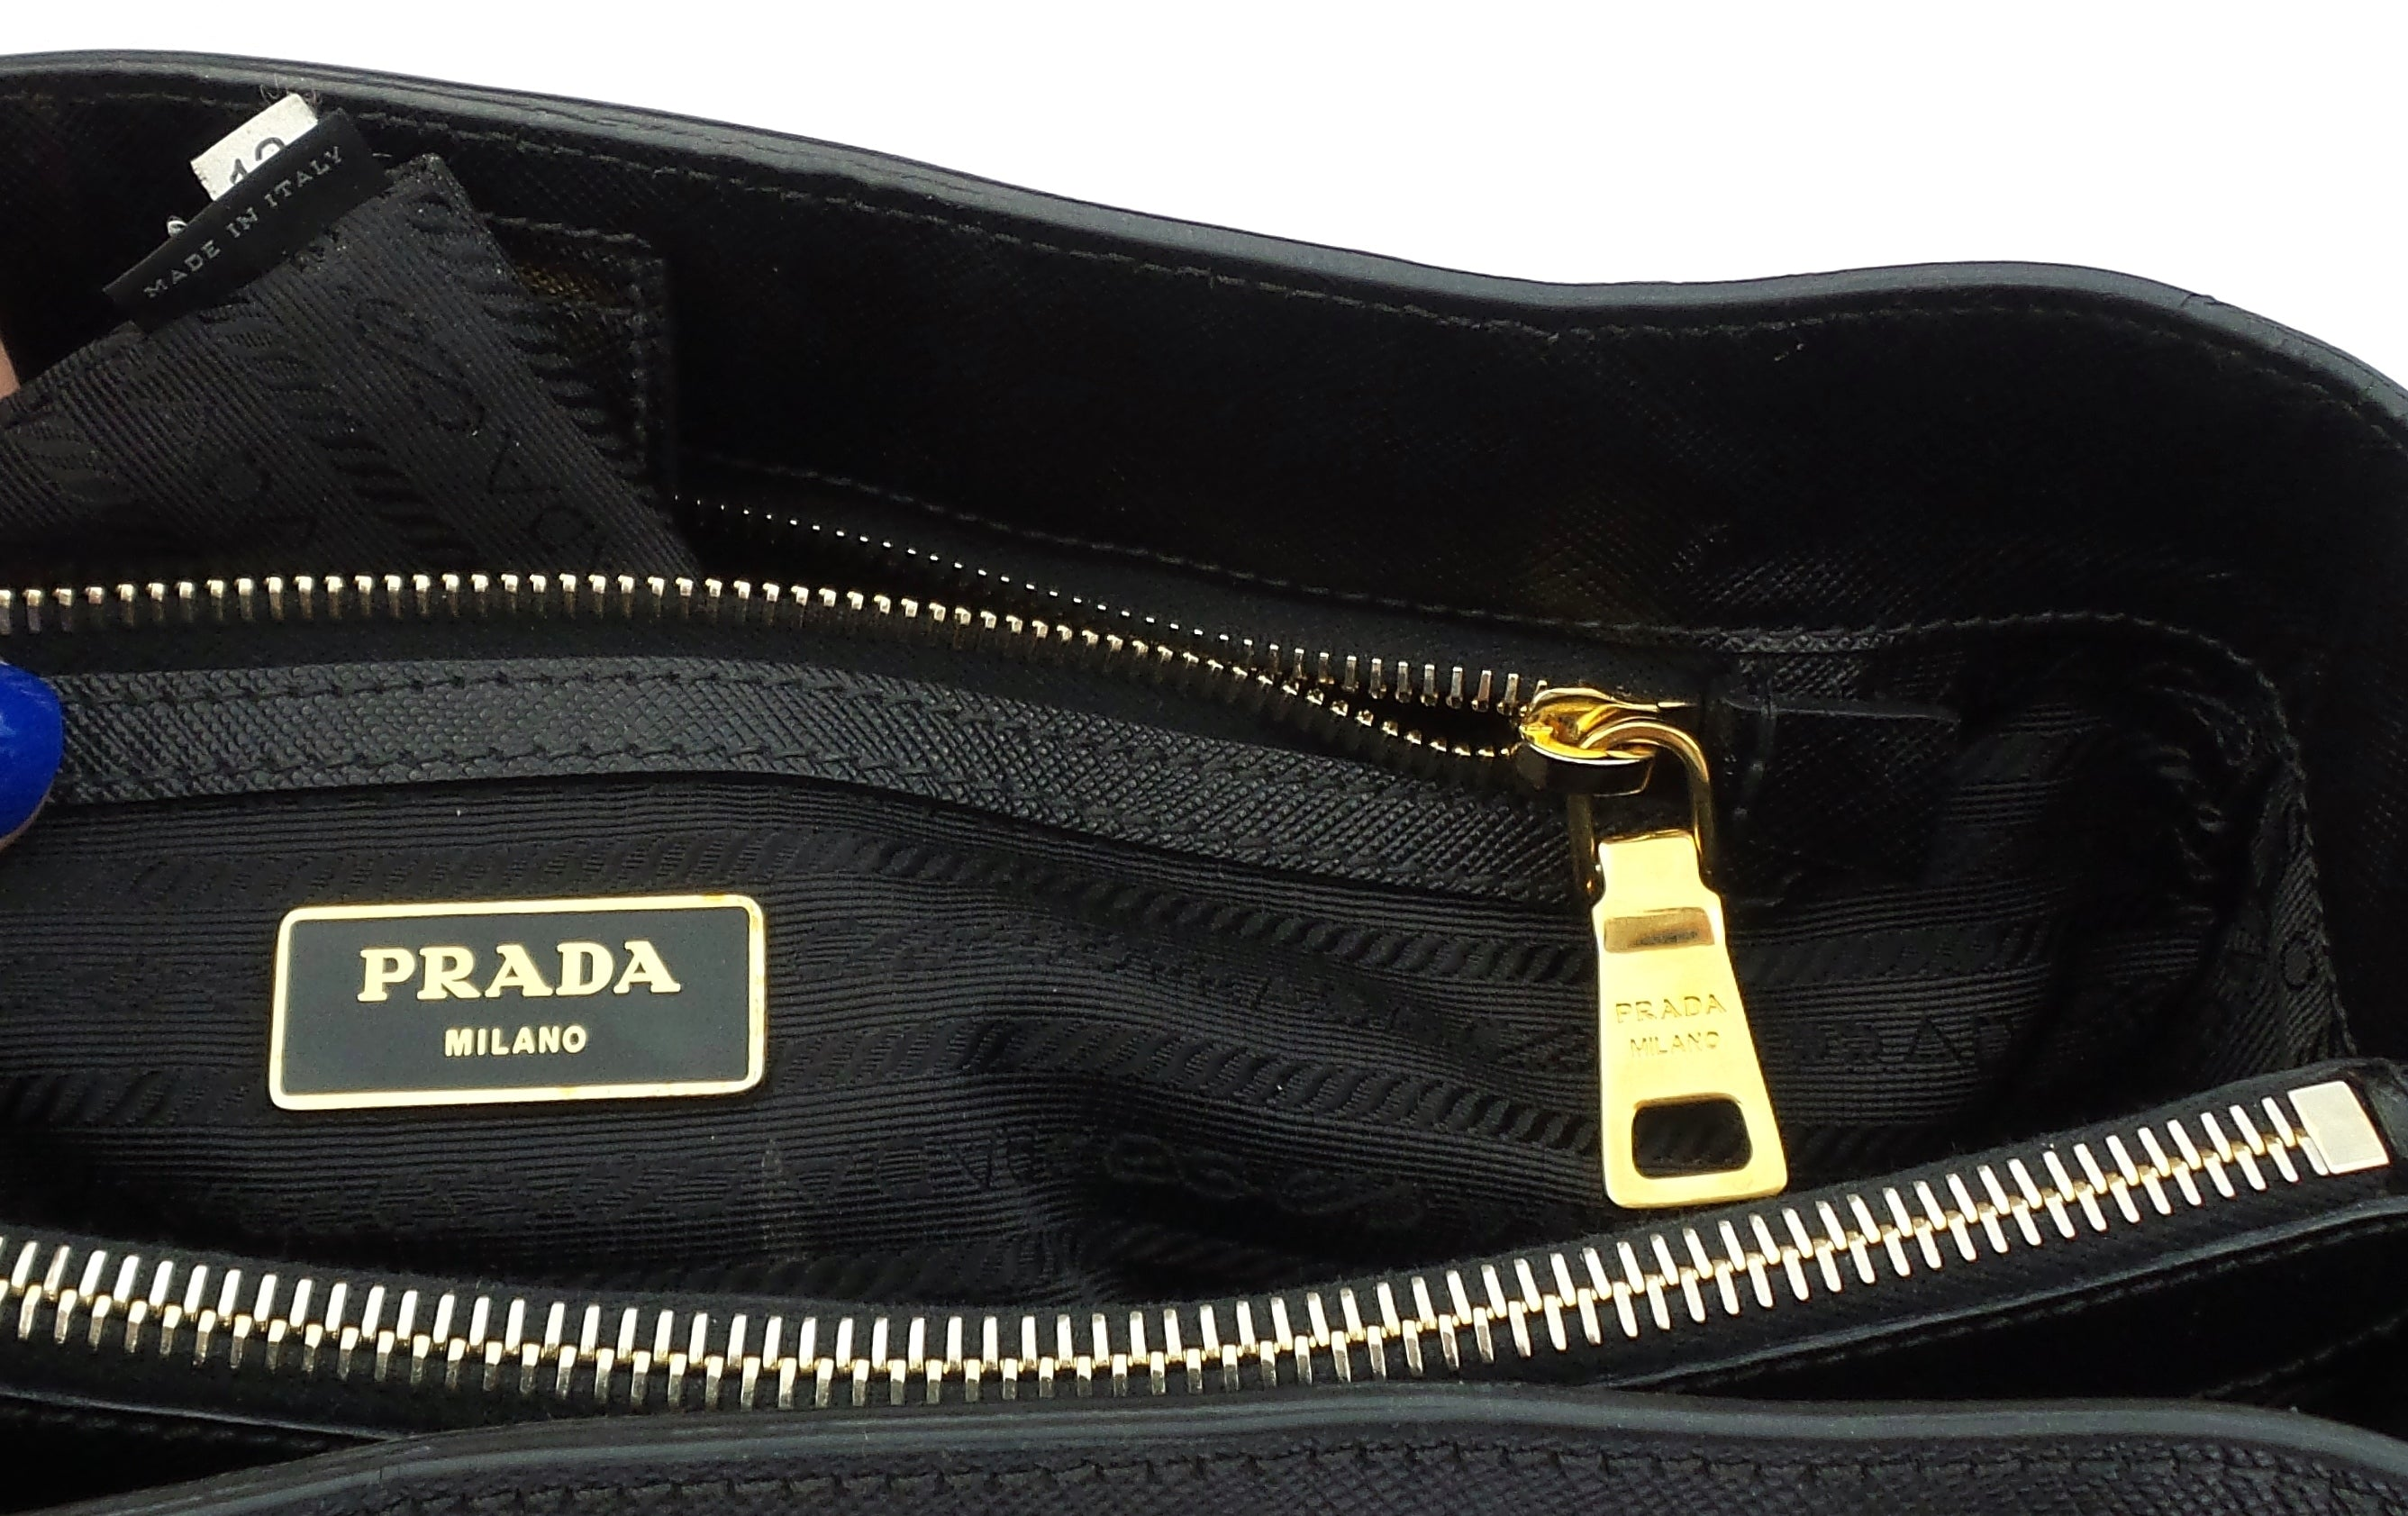 PRADA Saffiano Lux Black Leather Gold HW City Tote Bag BN1874